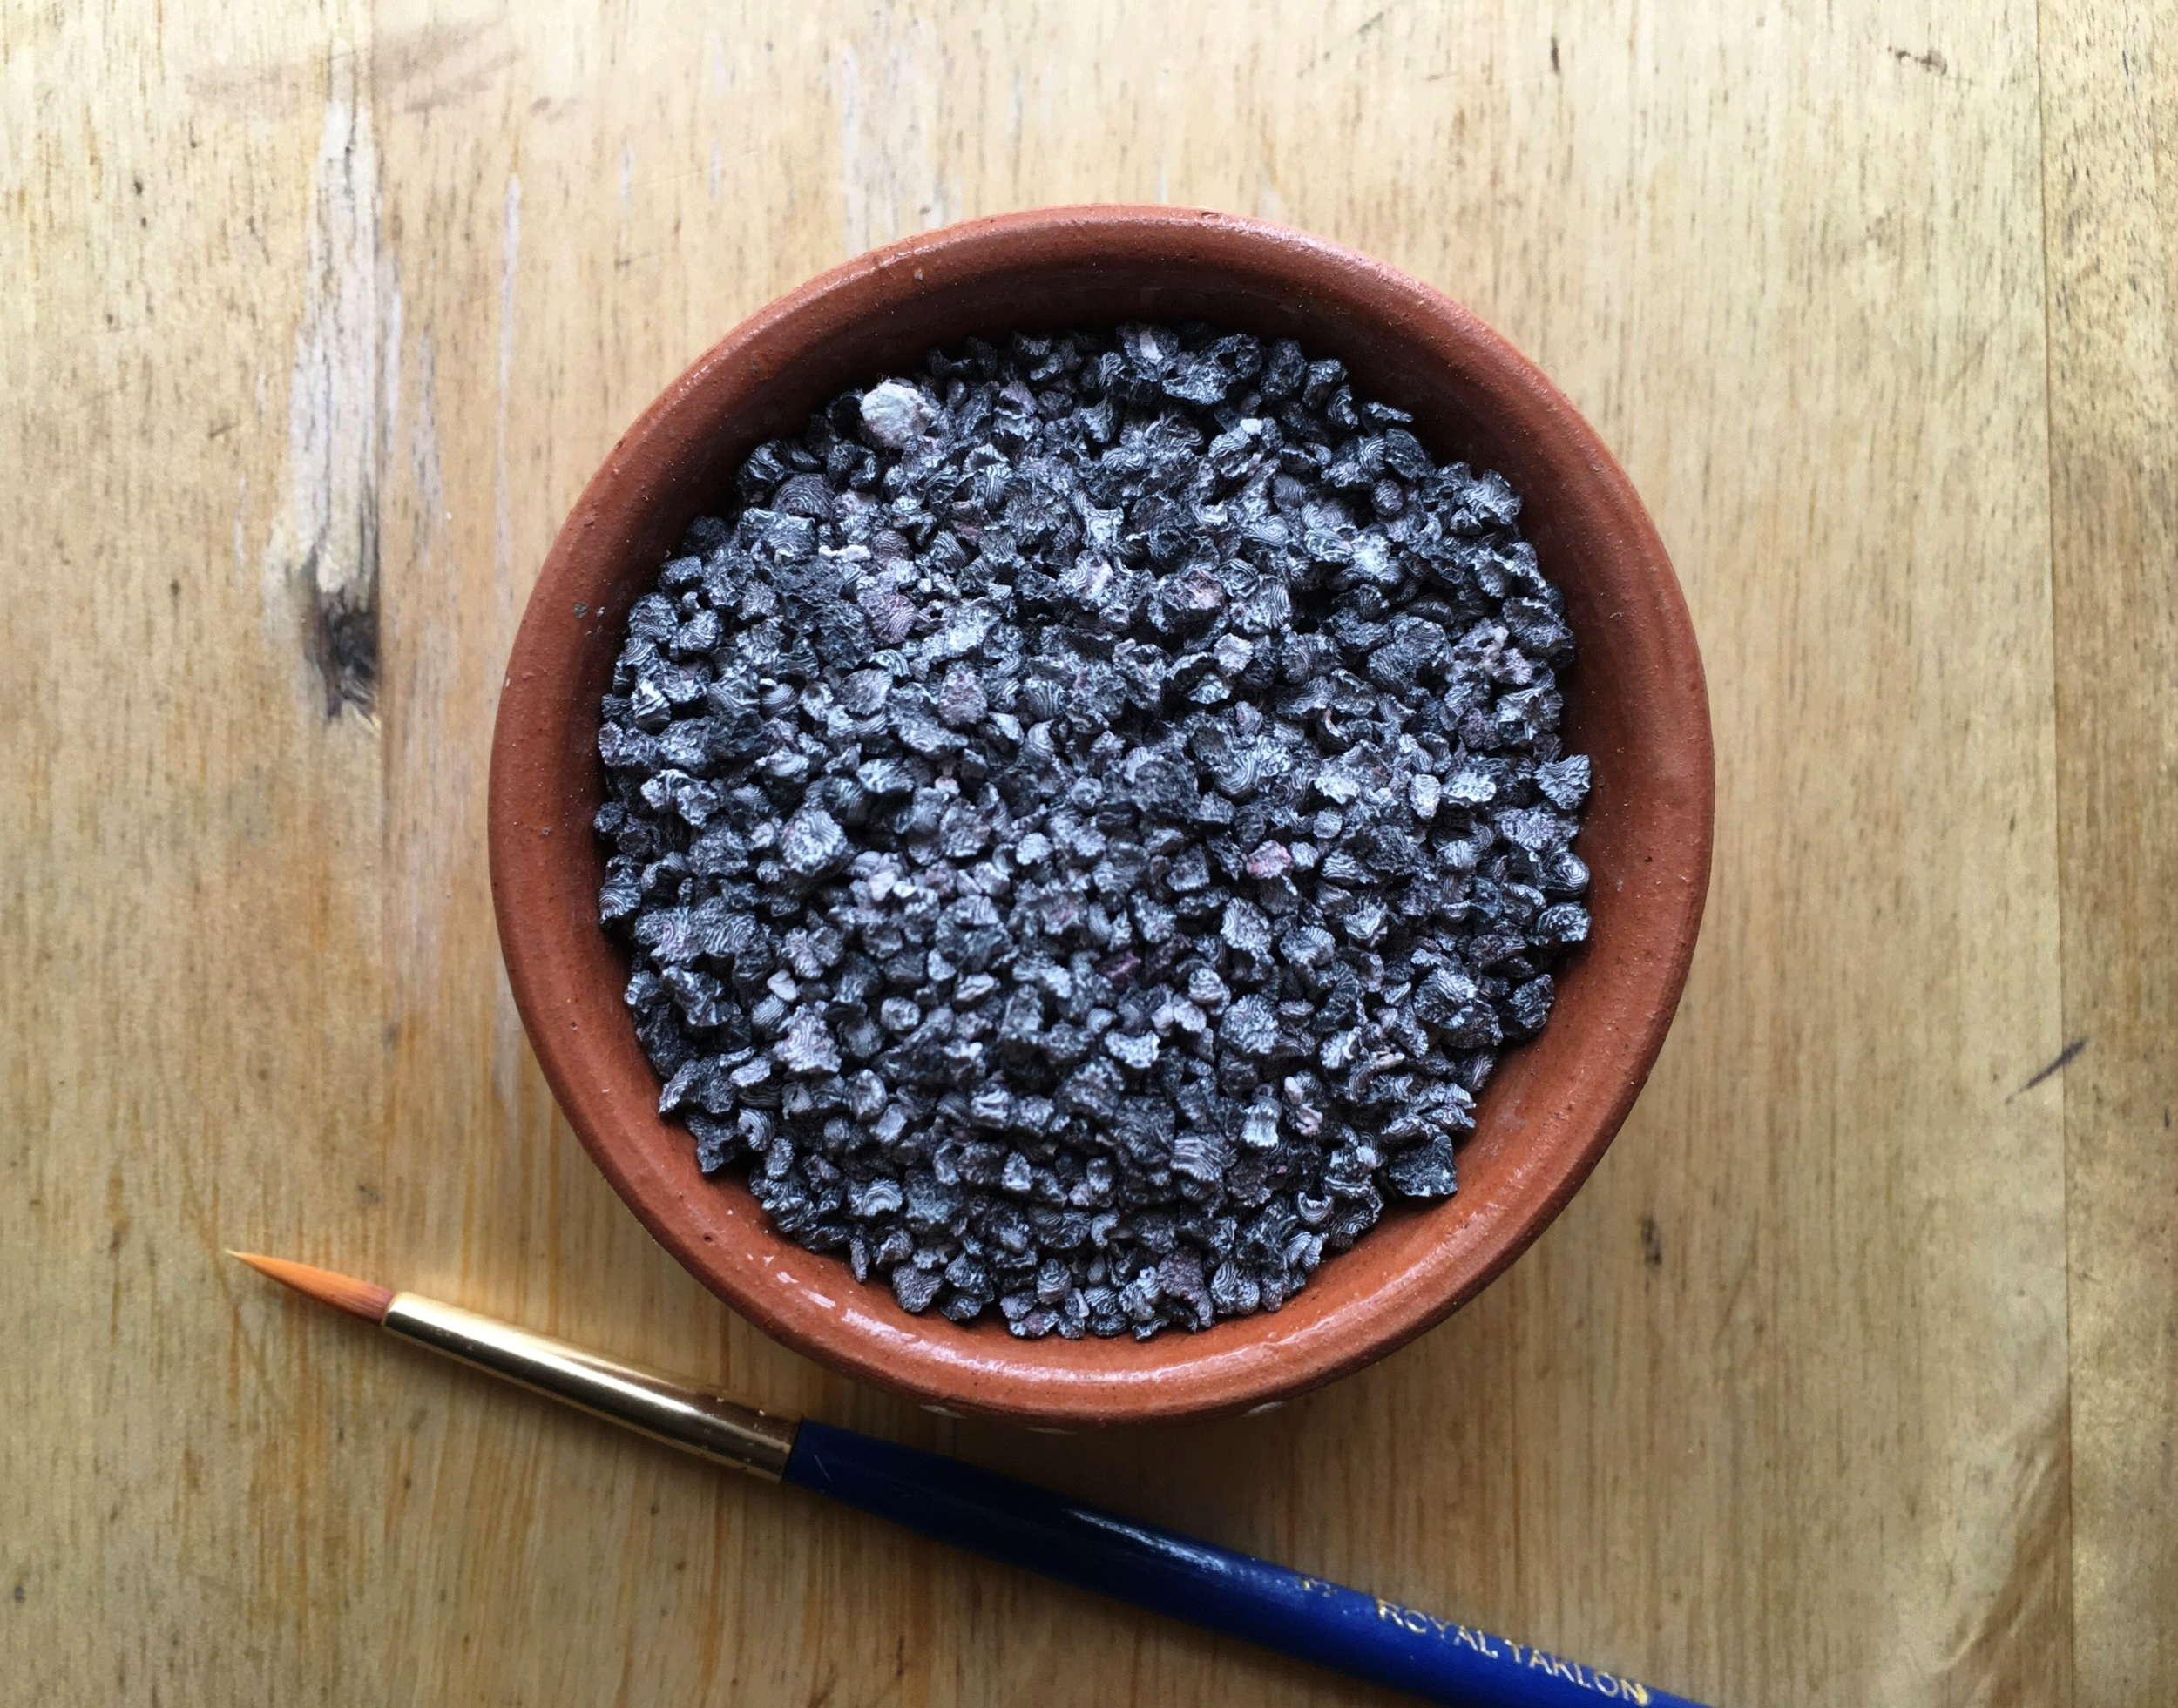 Not gravel, a little bowl of dried cochineal